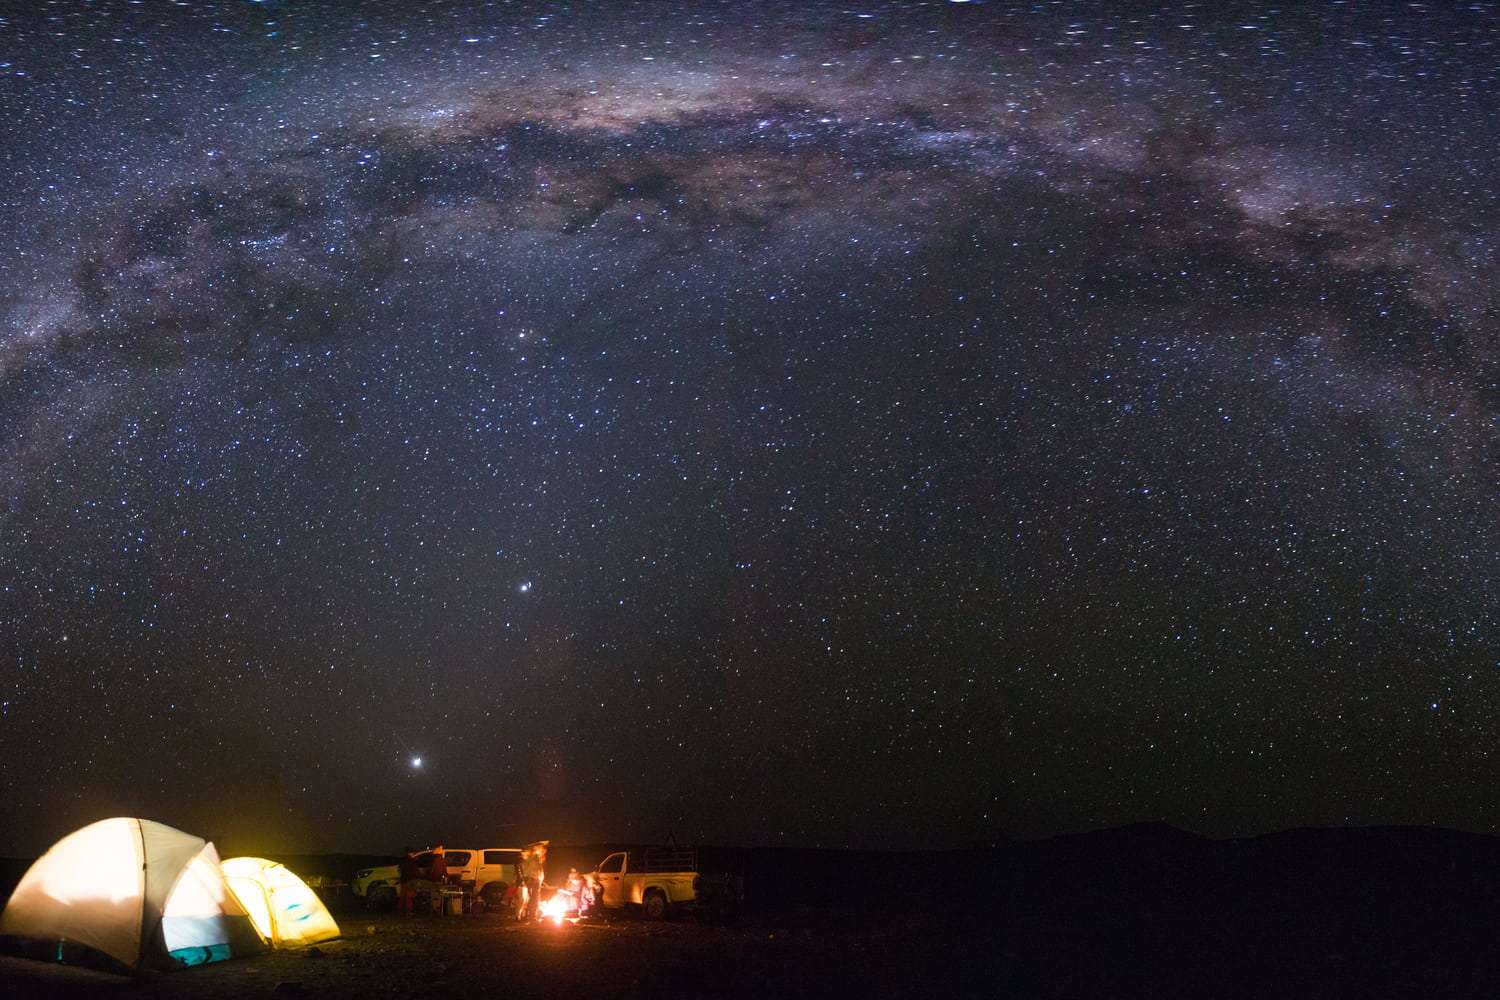 Panoramic view of the milkyway over tents of campers camping under the stars in the middle of the karoo in south africa